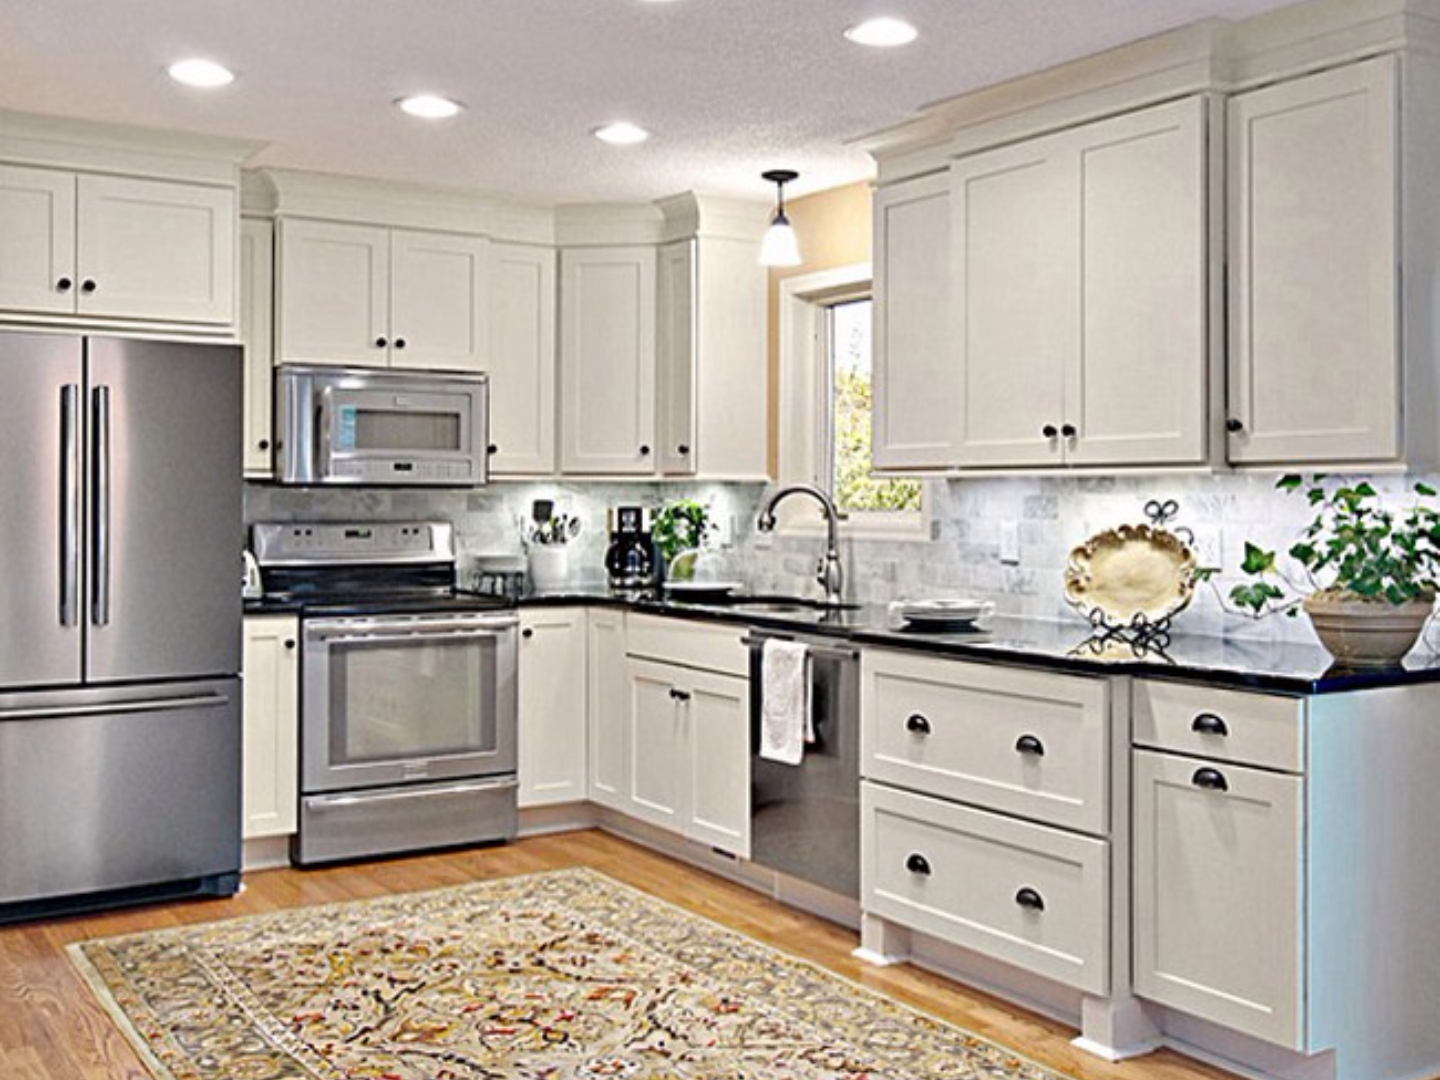 cabinet refinishing castle rock - Kitchen Cabinet Repainting